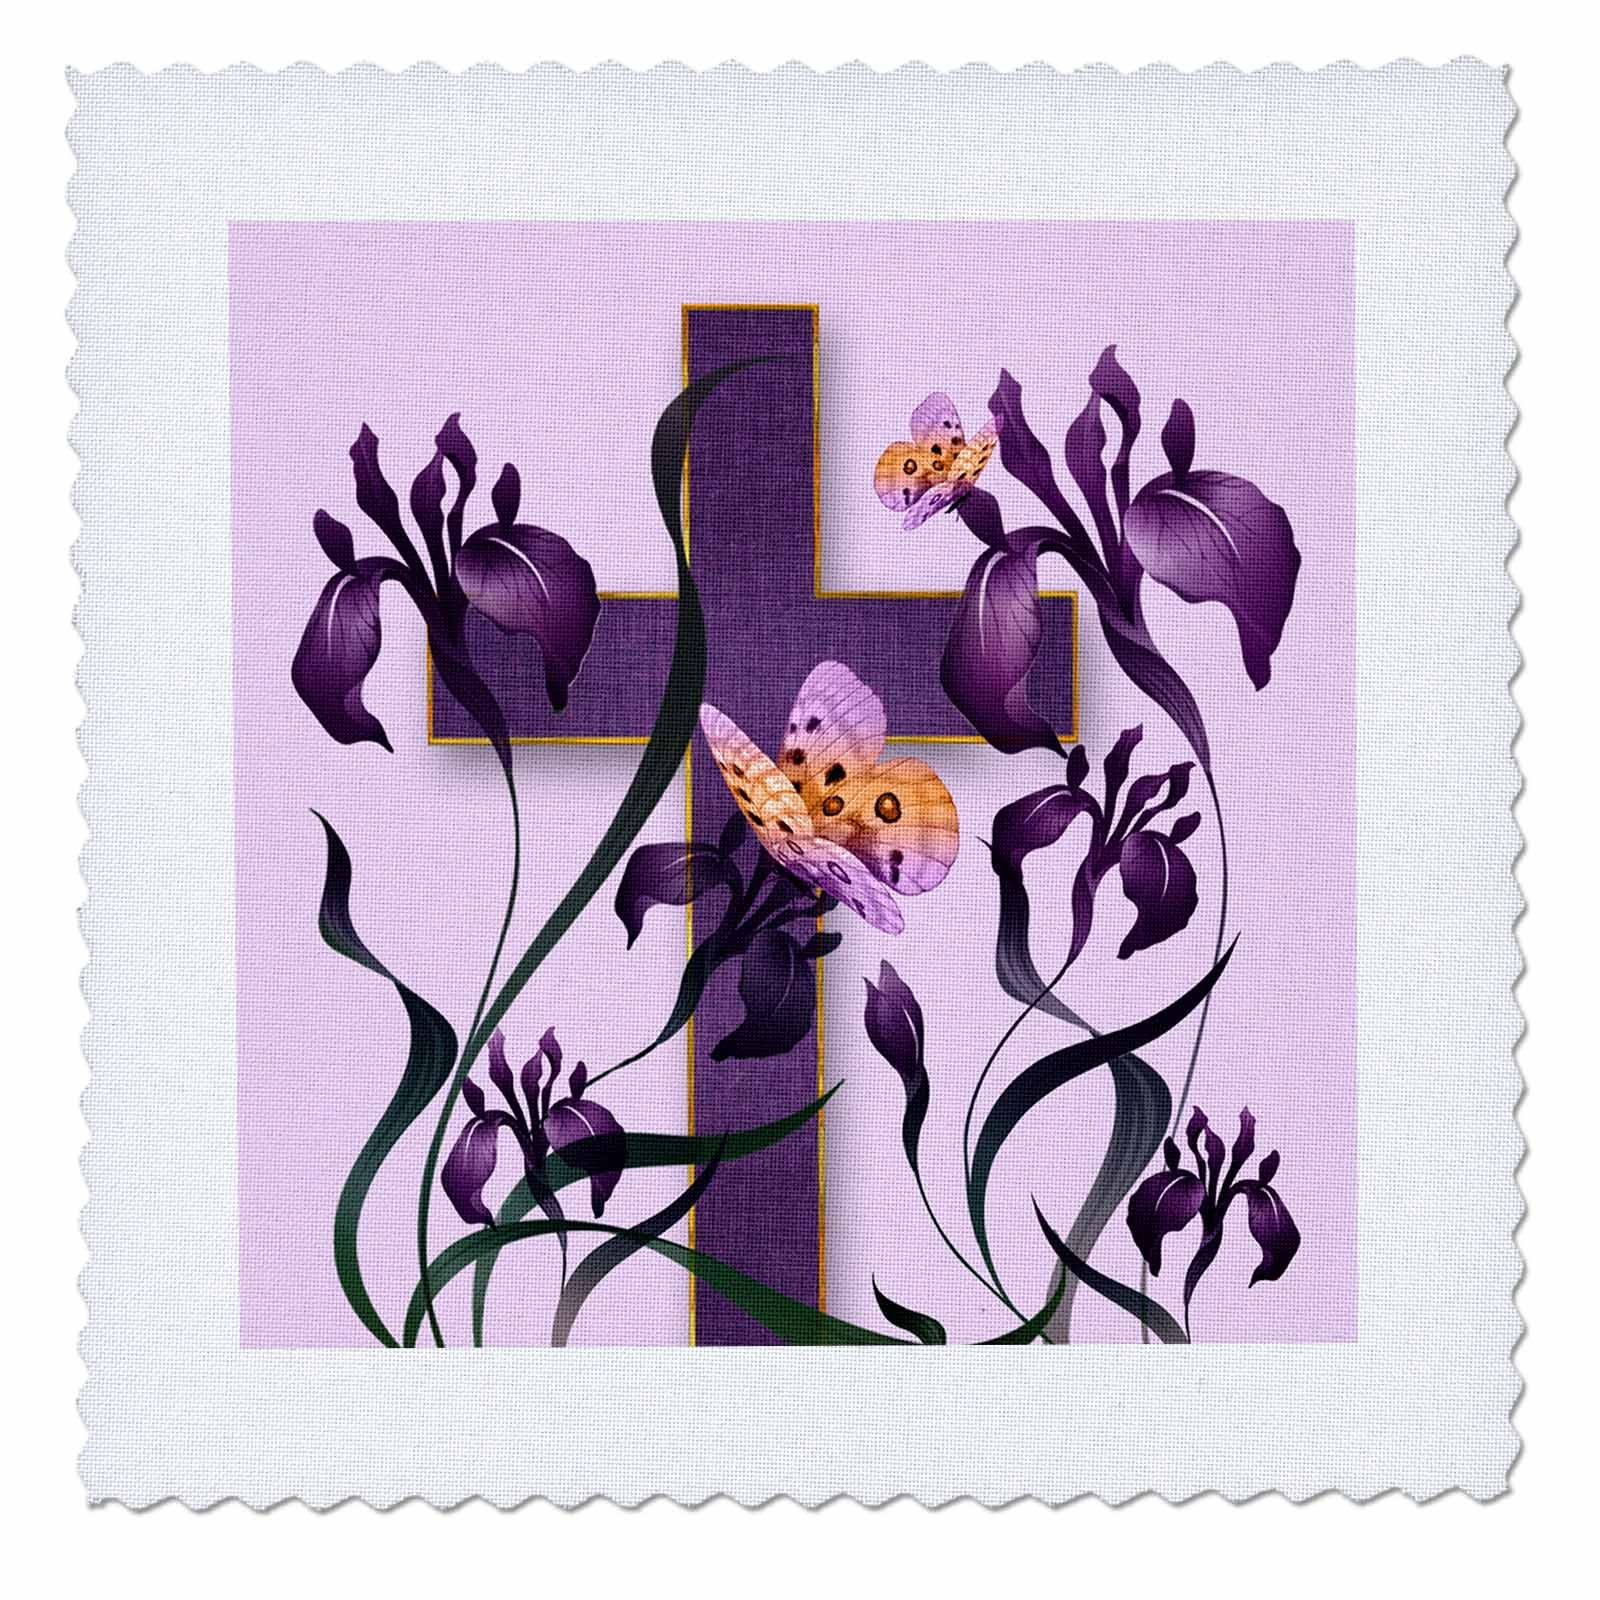 3dRose Doreen Erhardt Inspirational - Purple Iris Flowers with a Christian Cross and Butterflies - 22x22 inch quilt square (qs_266786_9) by 3dRose